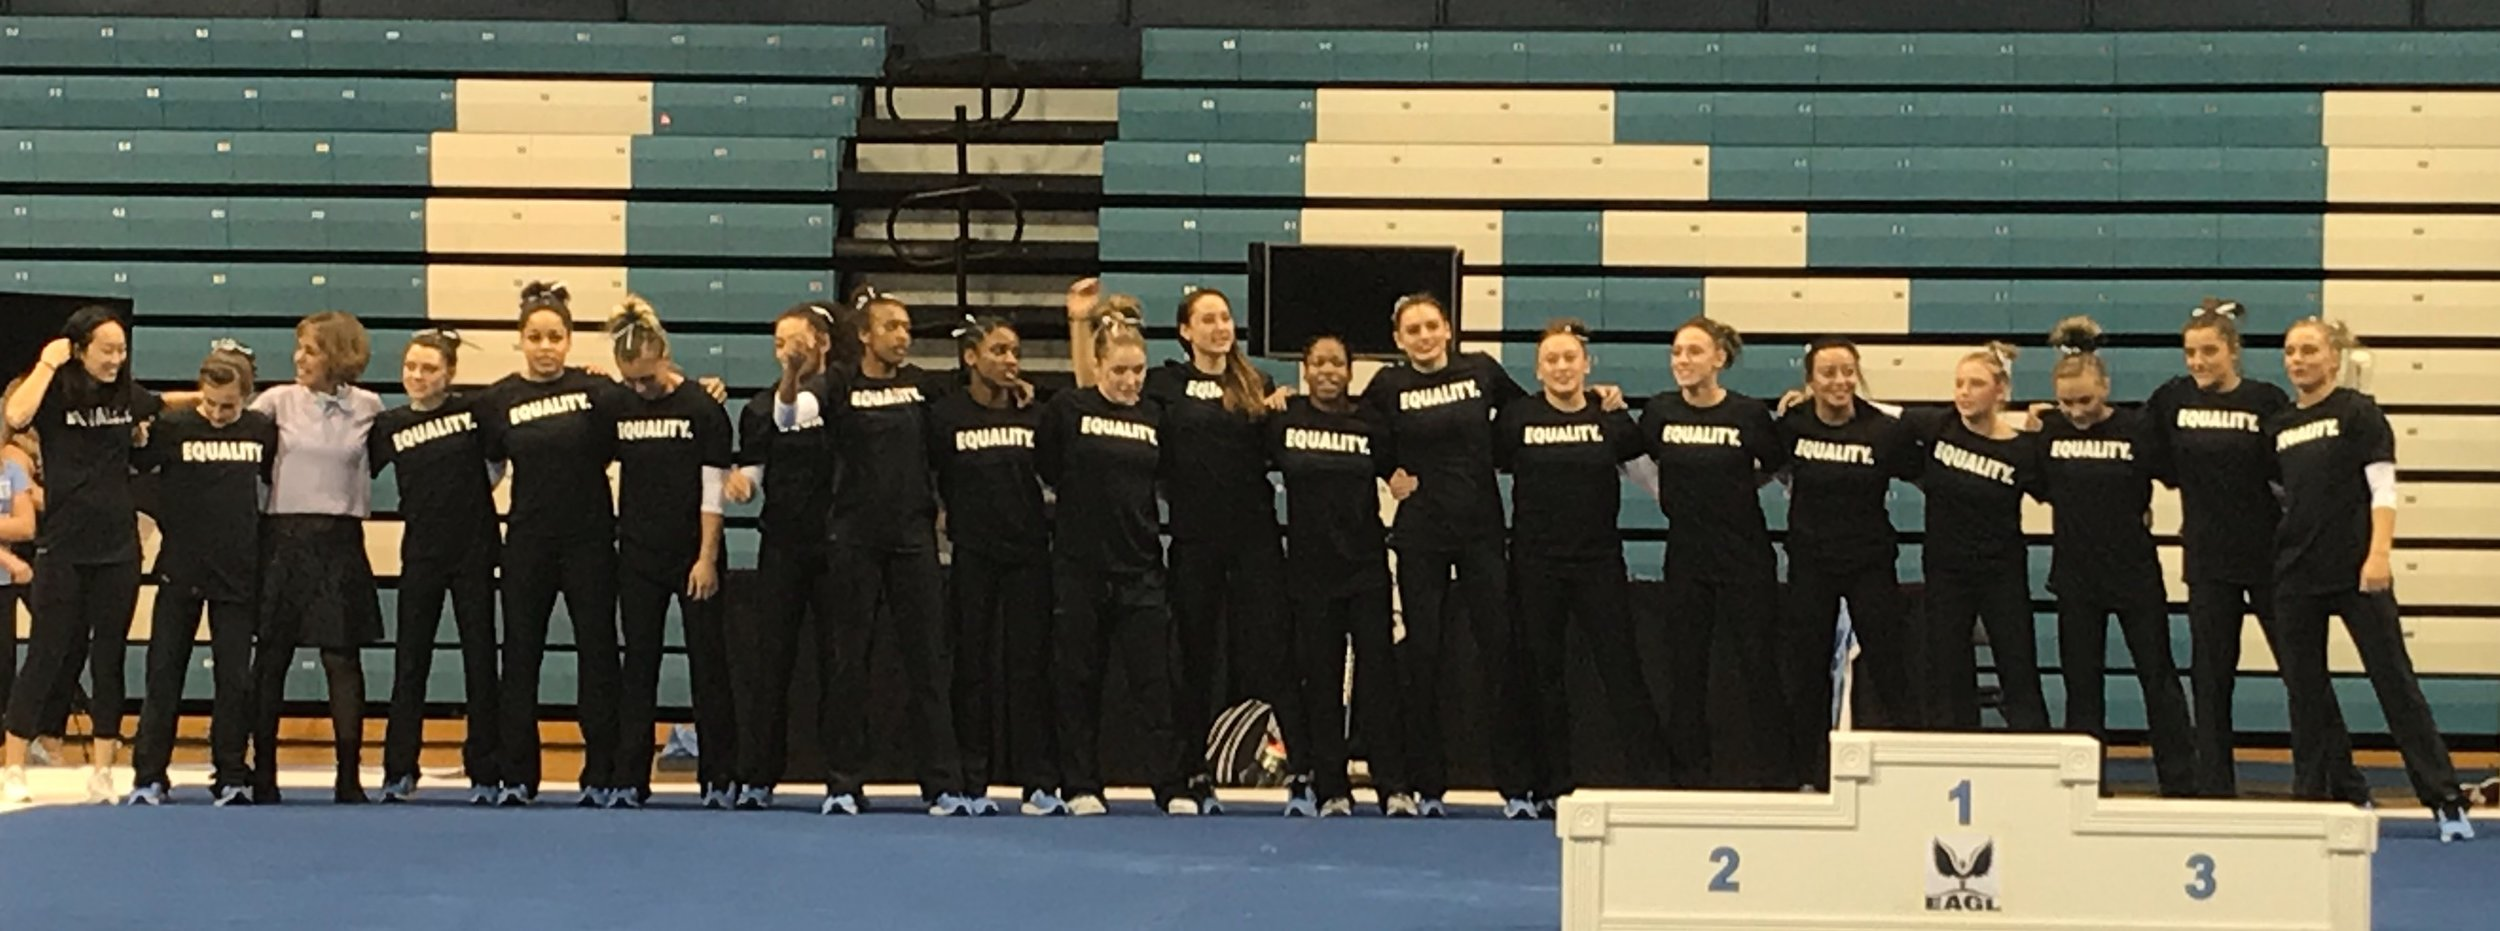 """UNC gymnasts wearing """"EQUALITY."""" T-shirts celebrate a win over Temple University, and inclusion and diversity, with Chancellor Carol Folt   Photo by Bryce Lapping"""